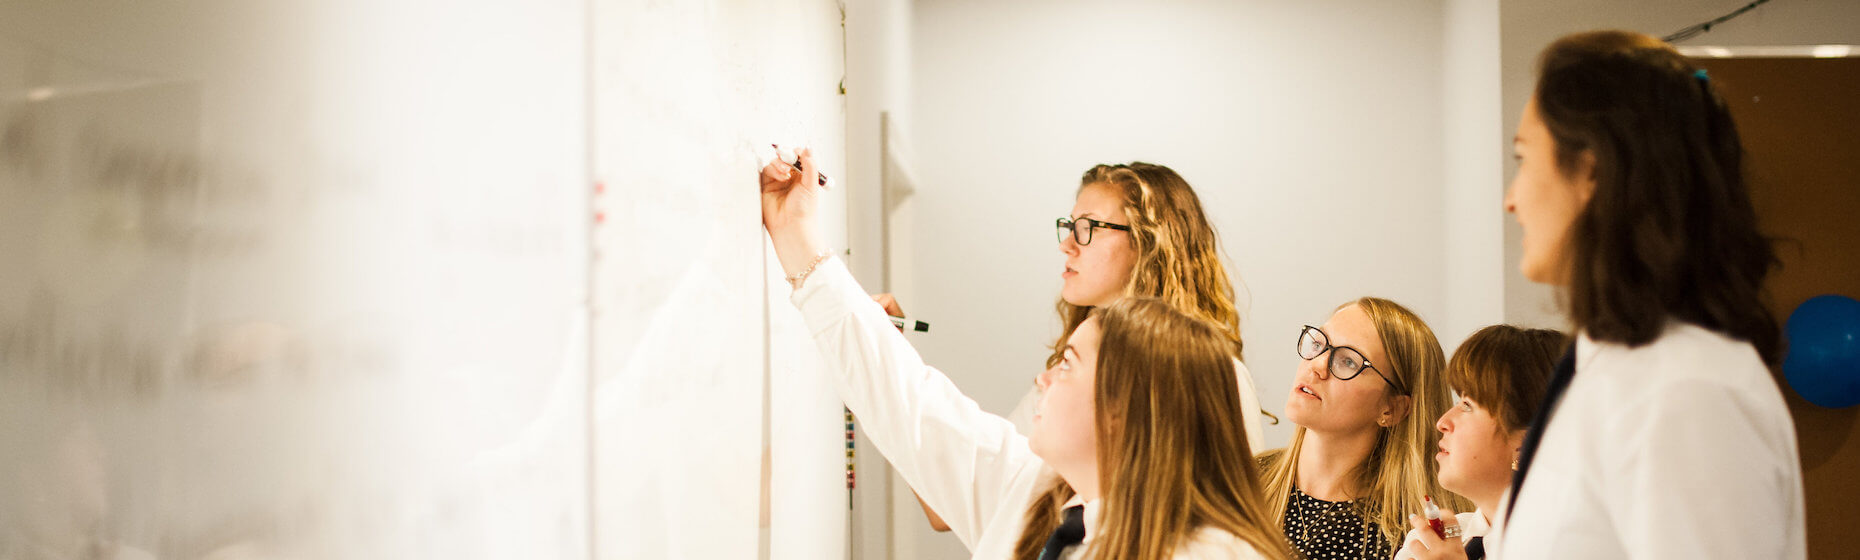 Girls in Math Class for Upper School Banner